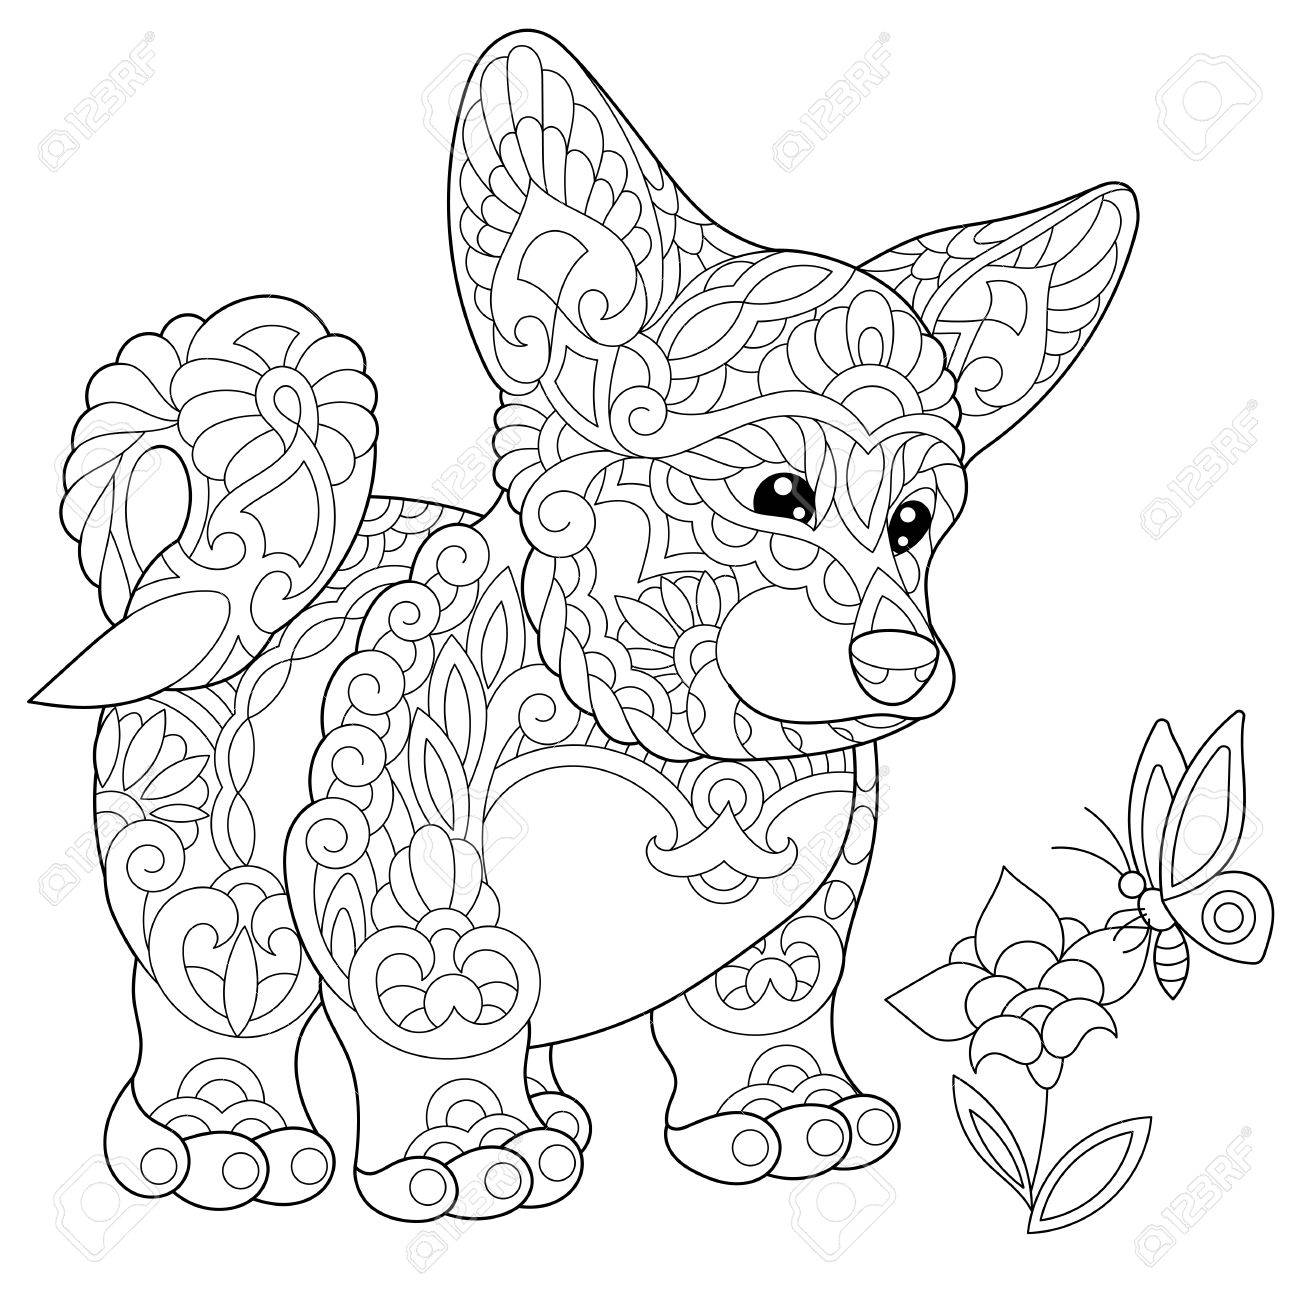 coloring page of welsh corgi dog and butterfly on a flower